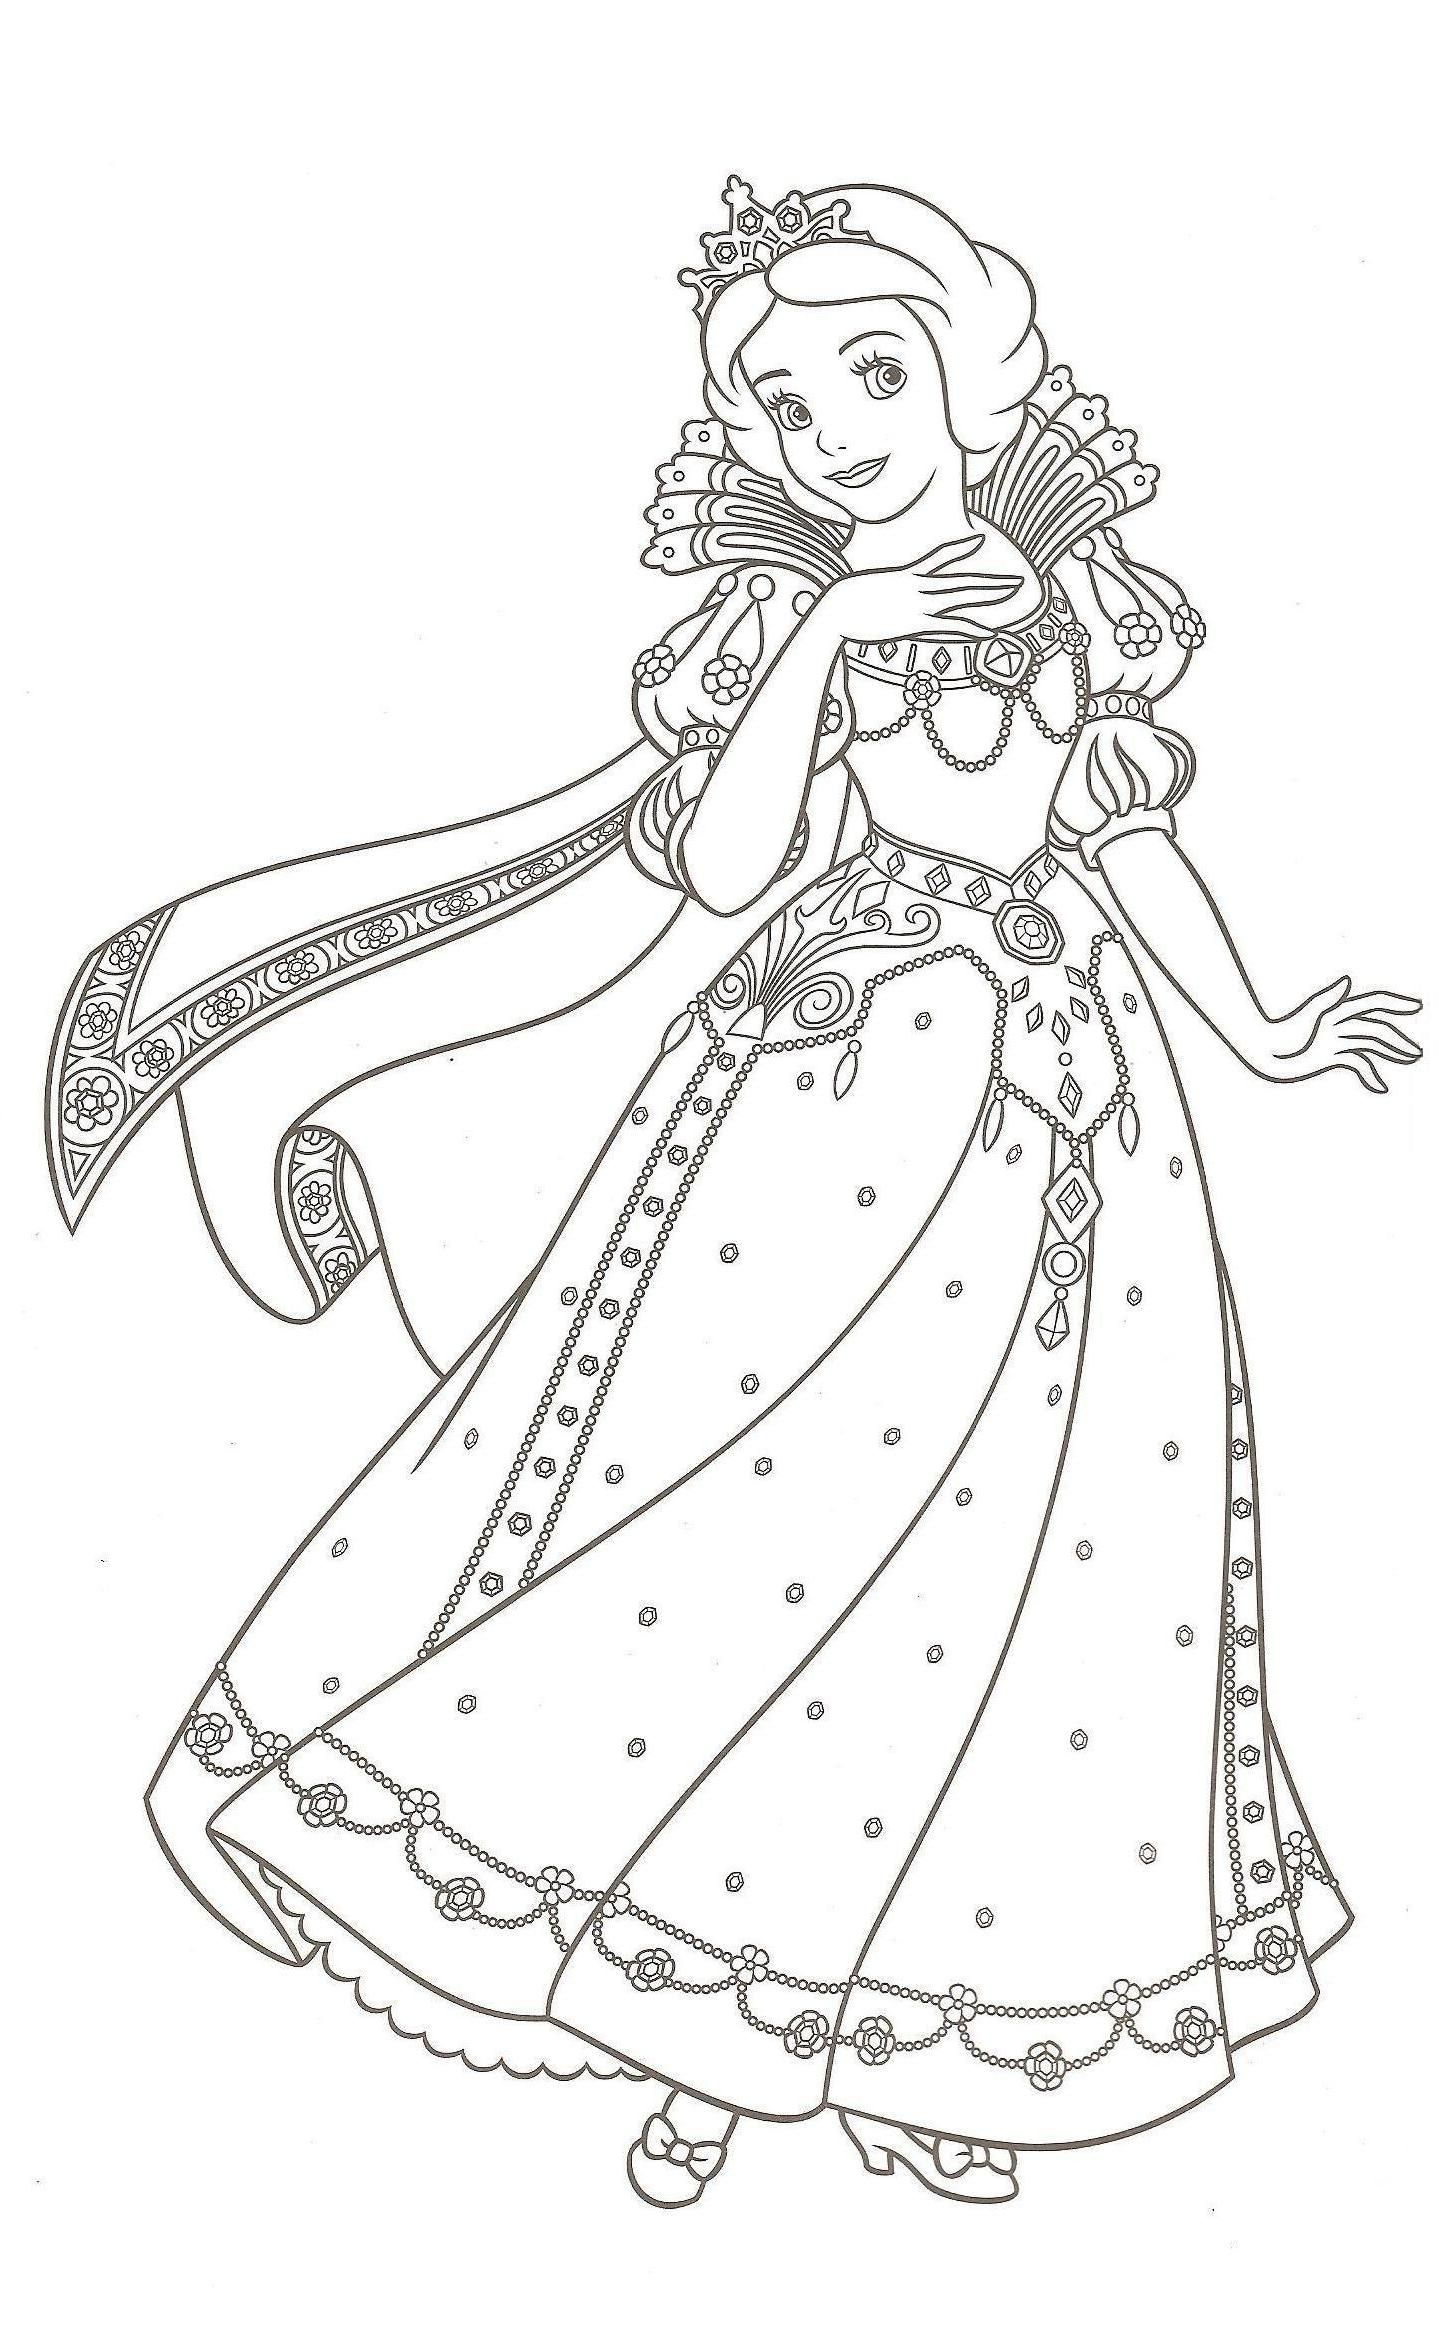 Coloriage A Imprimer Blanche Neige Coloriage Blanche Neige Coloriage  Blanche Neig… | Disney princess coloring pages, Disney princess colors, Princess  coloring pages